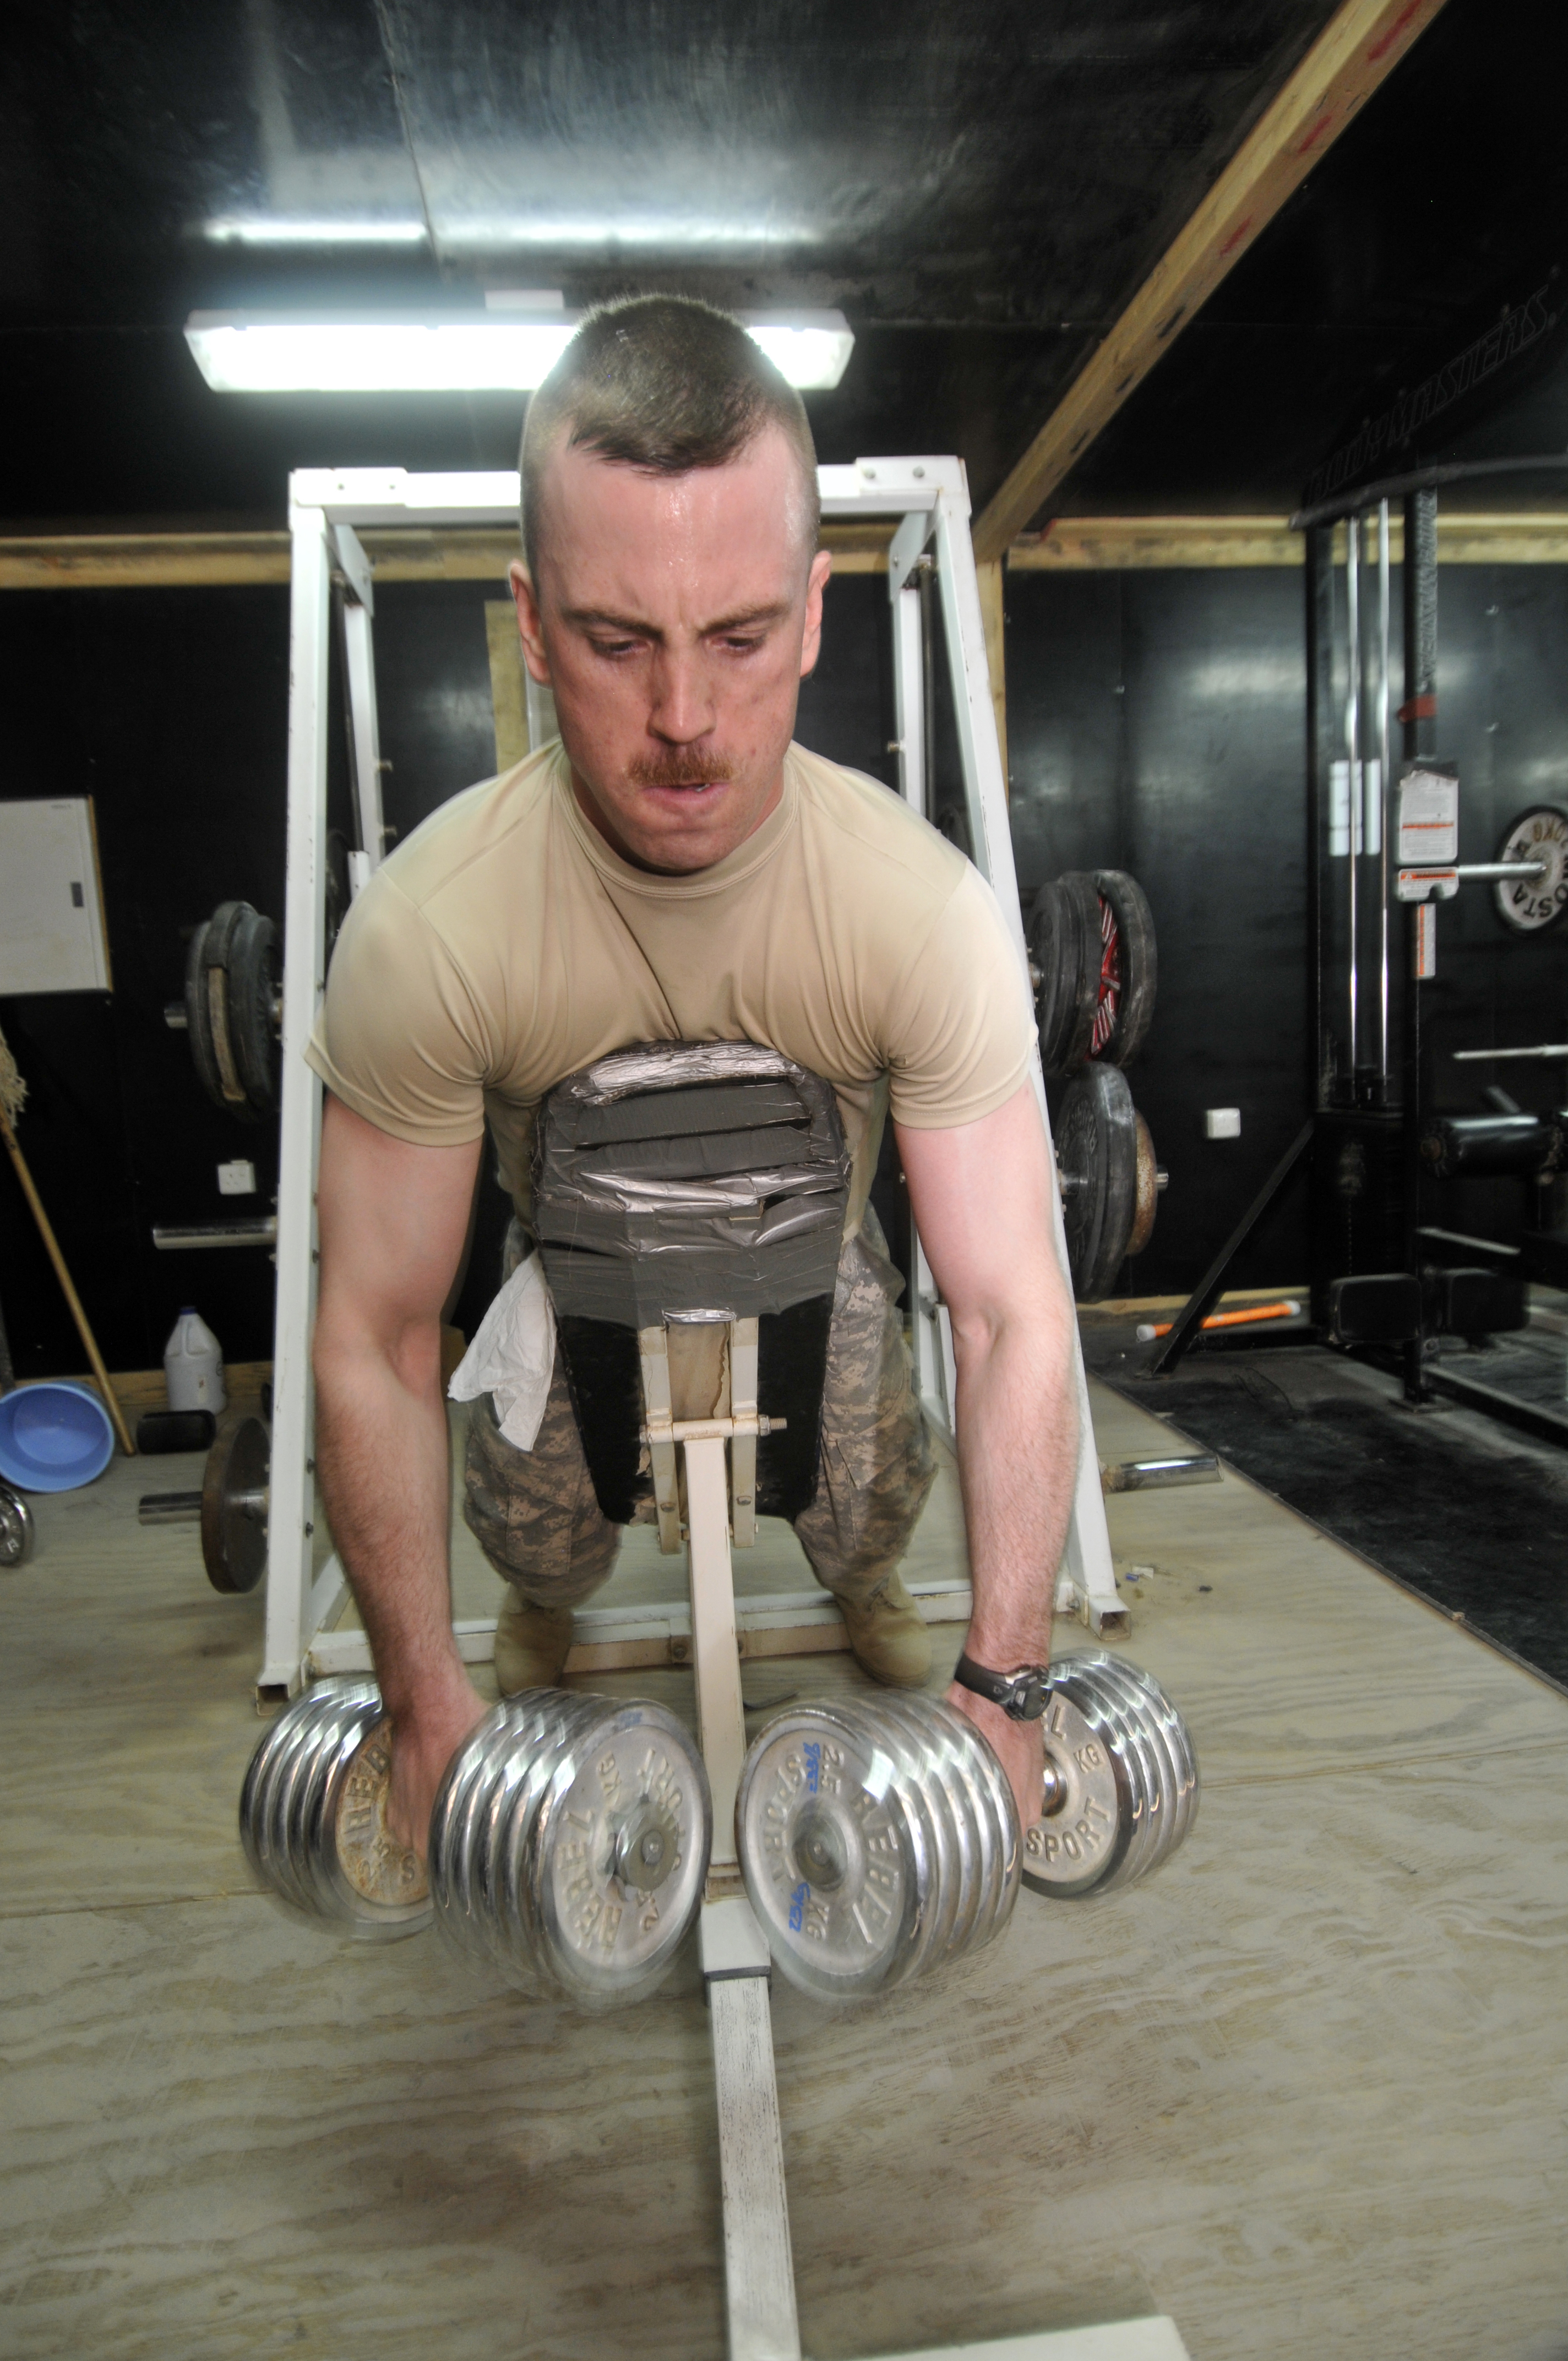 creatine and glutamine for weightlifting